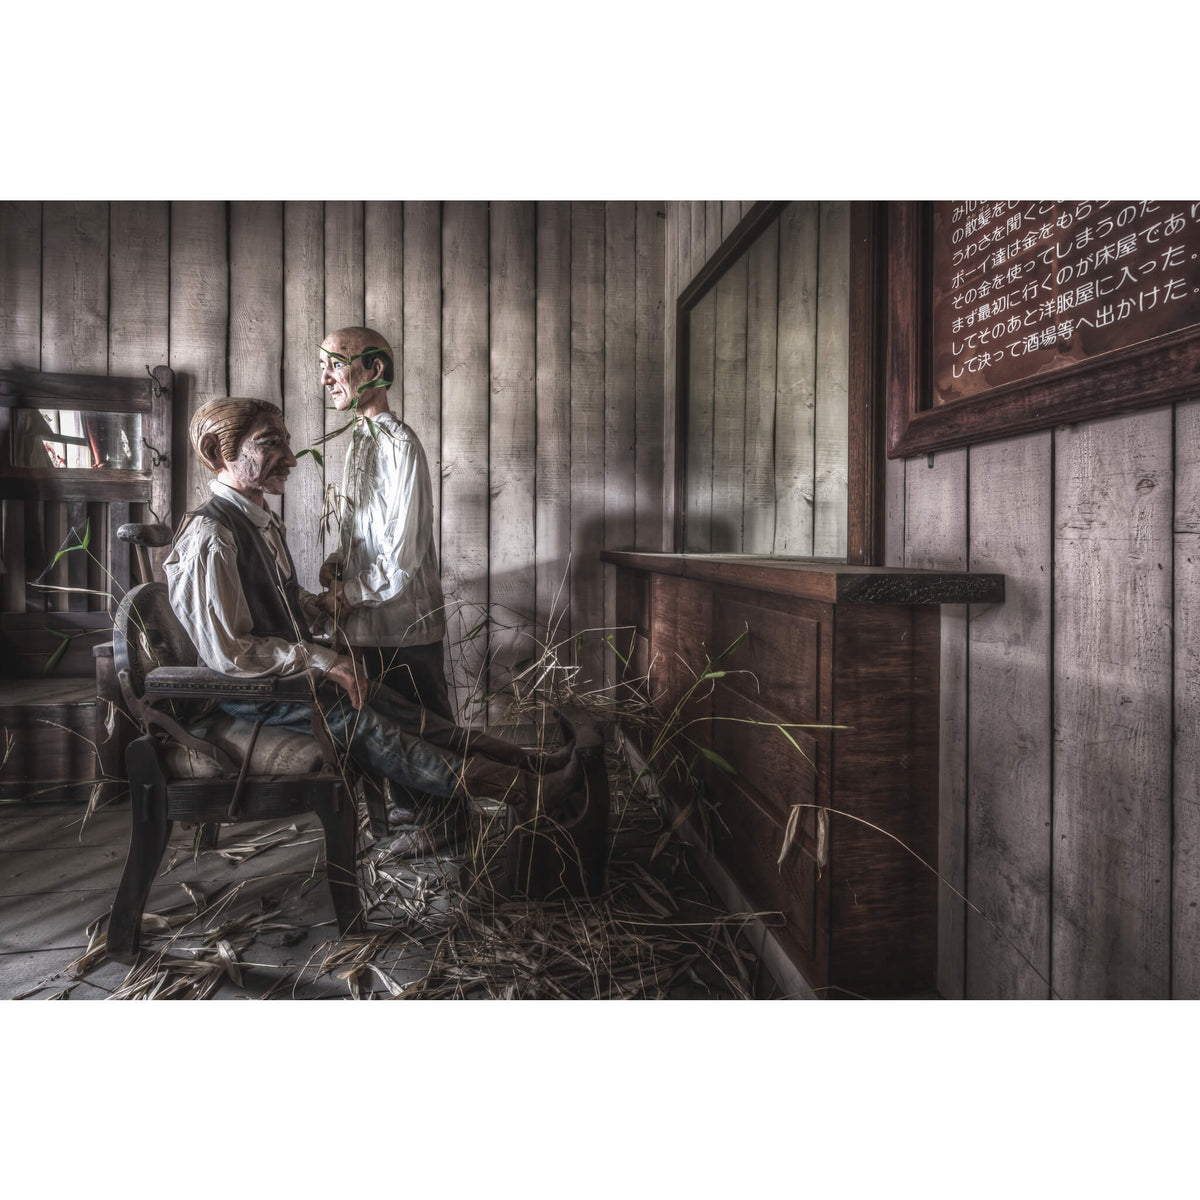 Barber | Western Village Fine Art Print - Lost Collective Shop